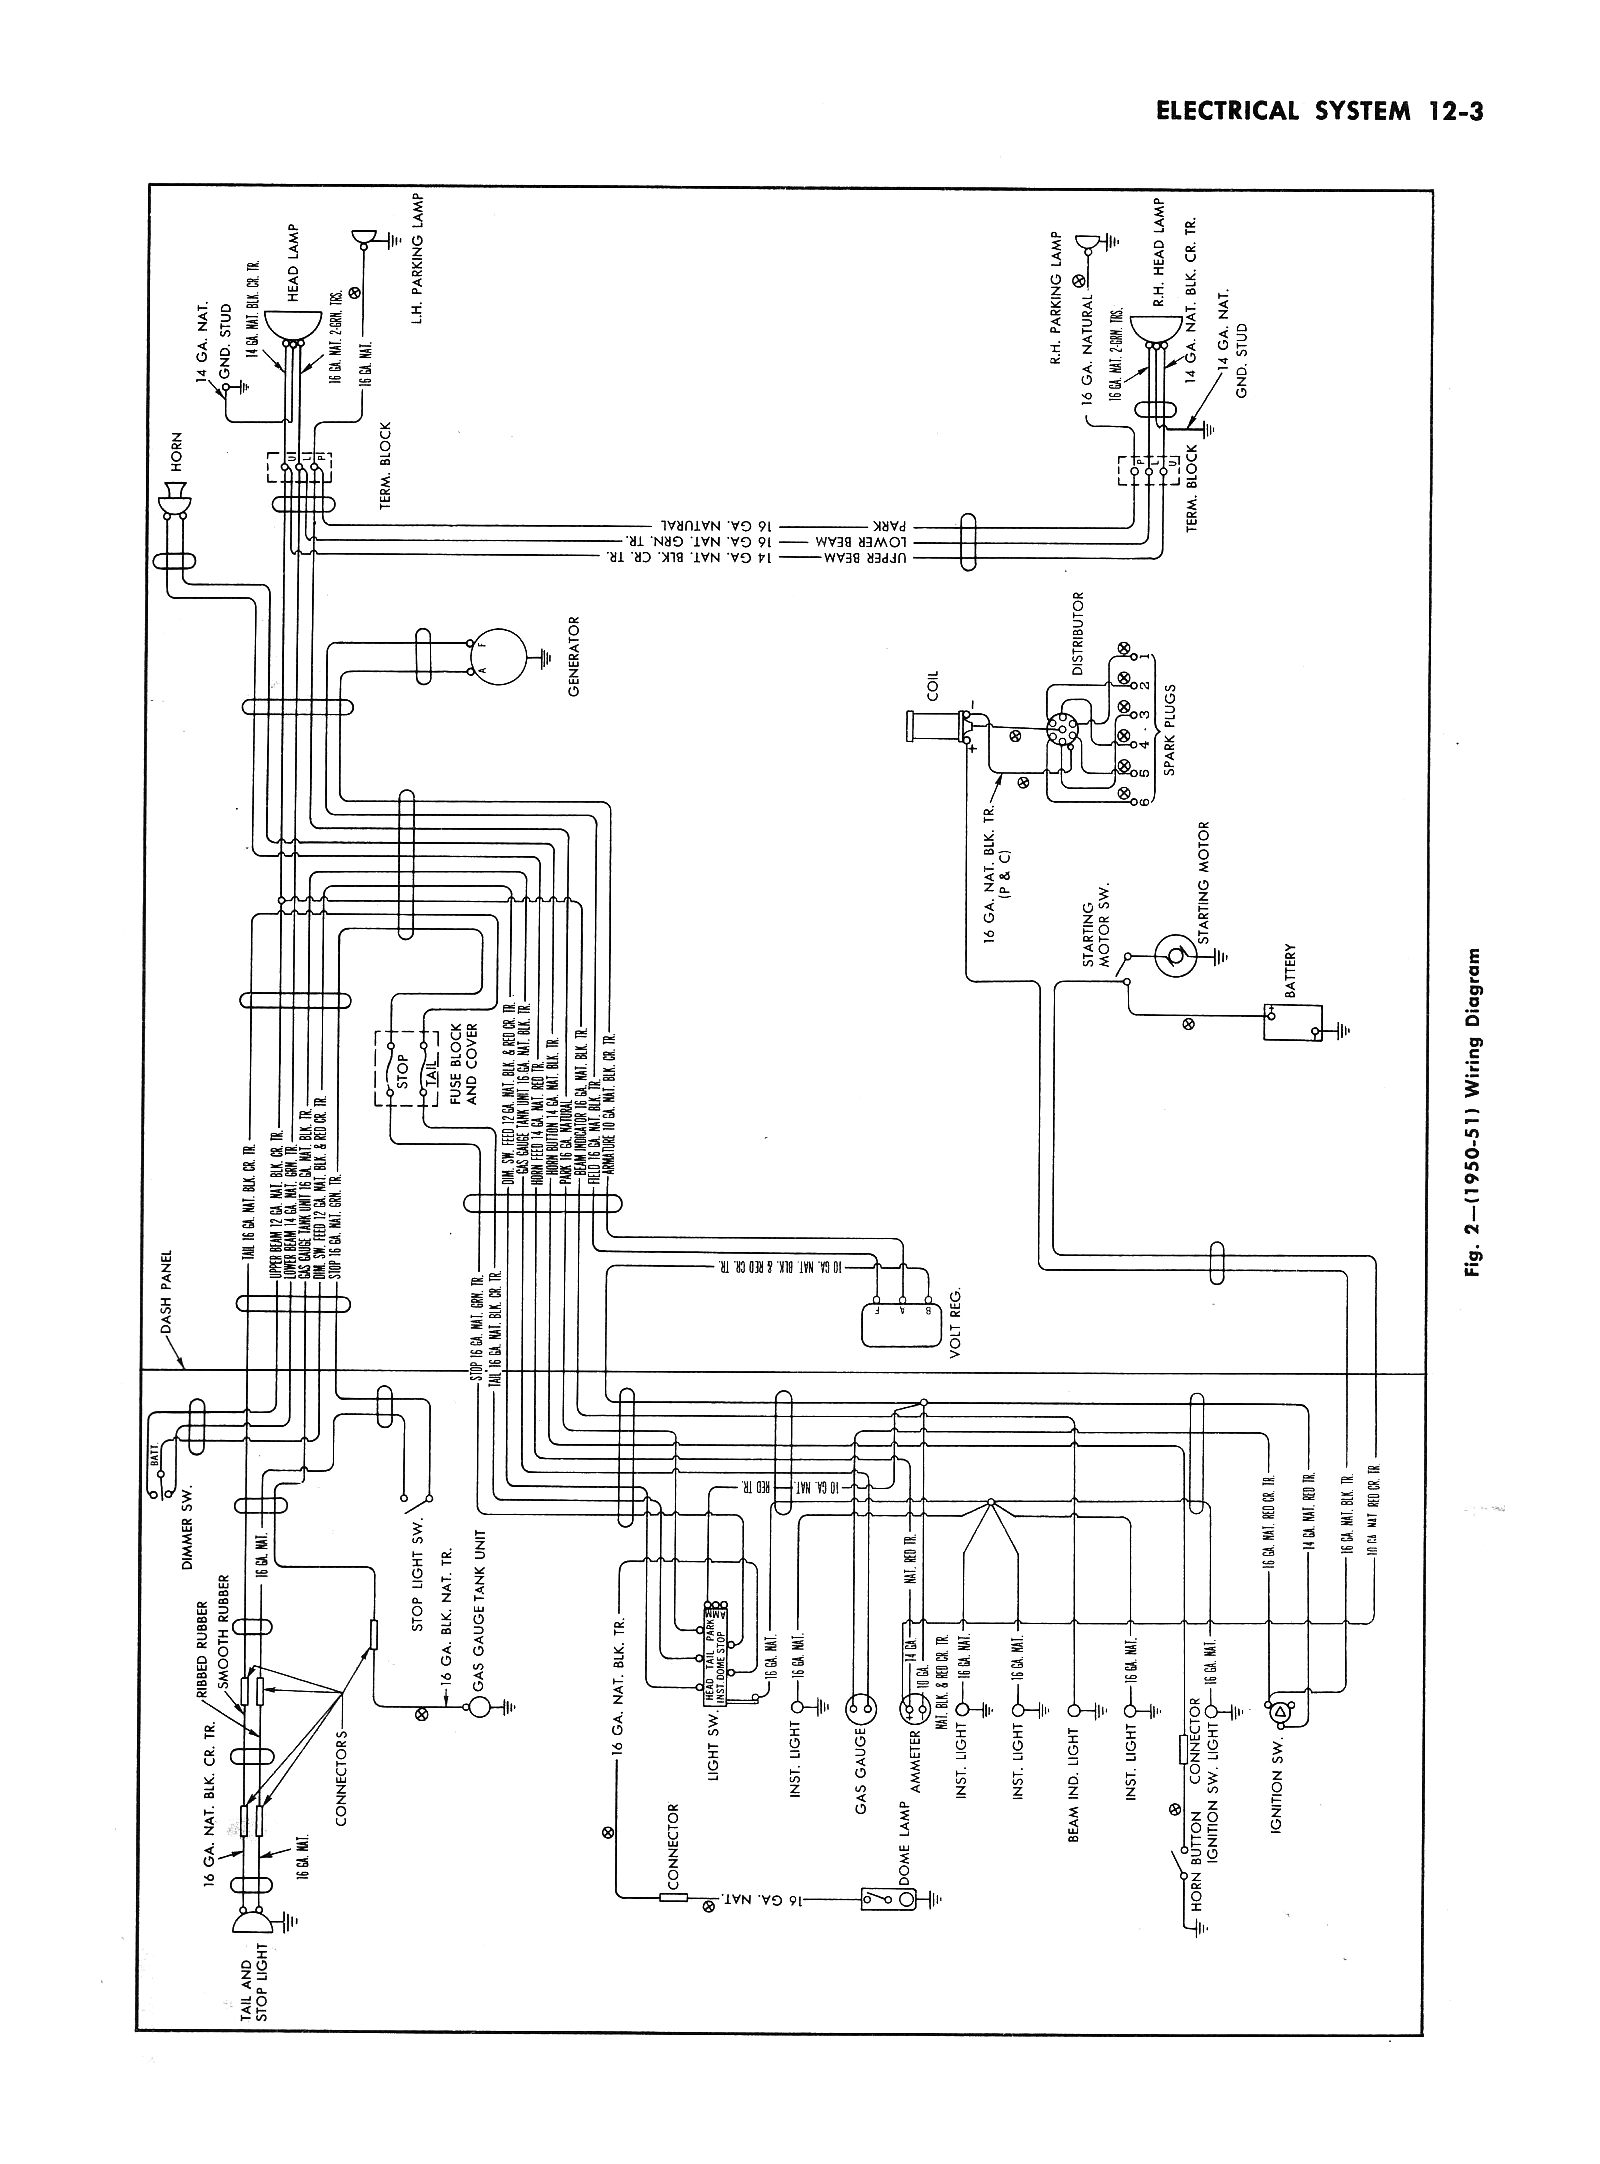 51ctsm1203 1950 chevy truck wiring harness on 1950 download wirning diagrams chevy truck wiring harness at fashall.co